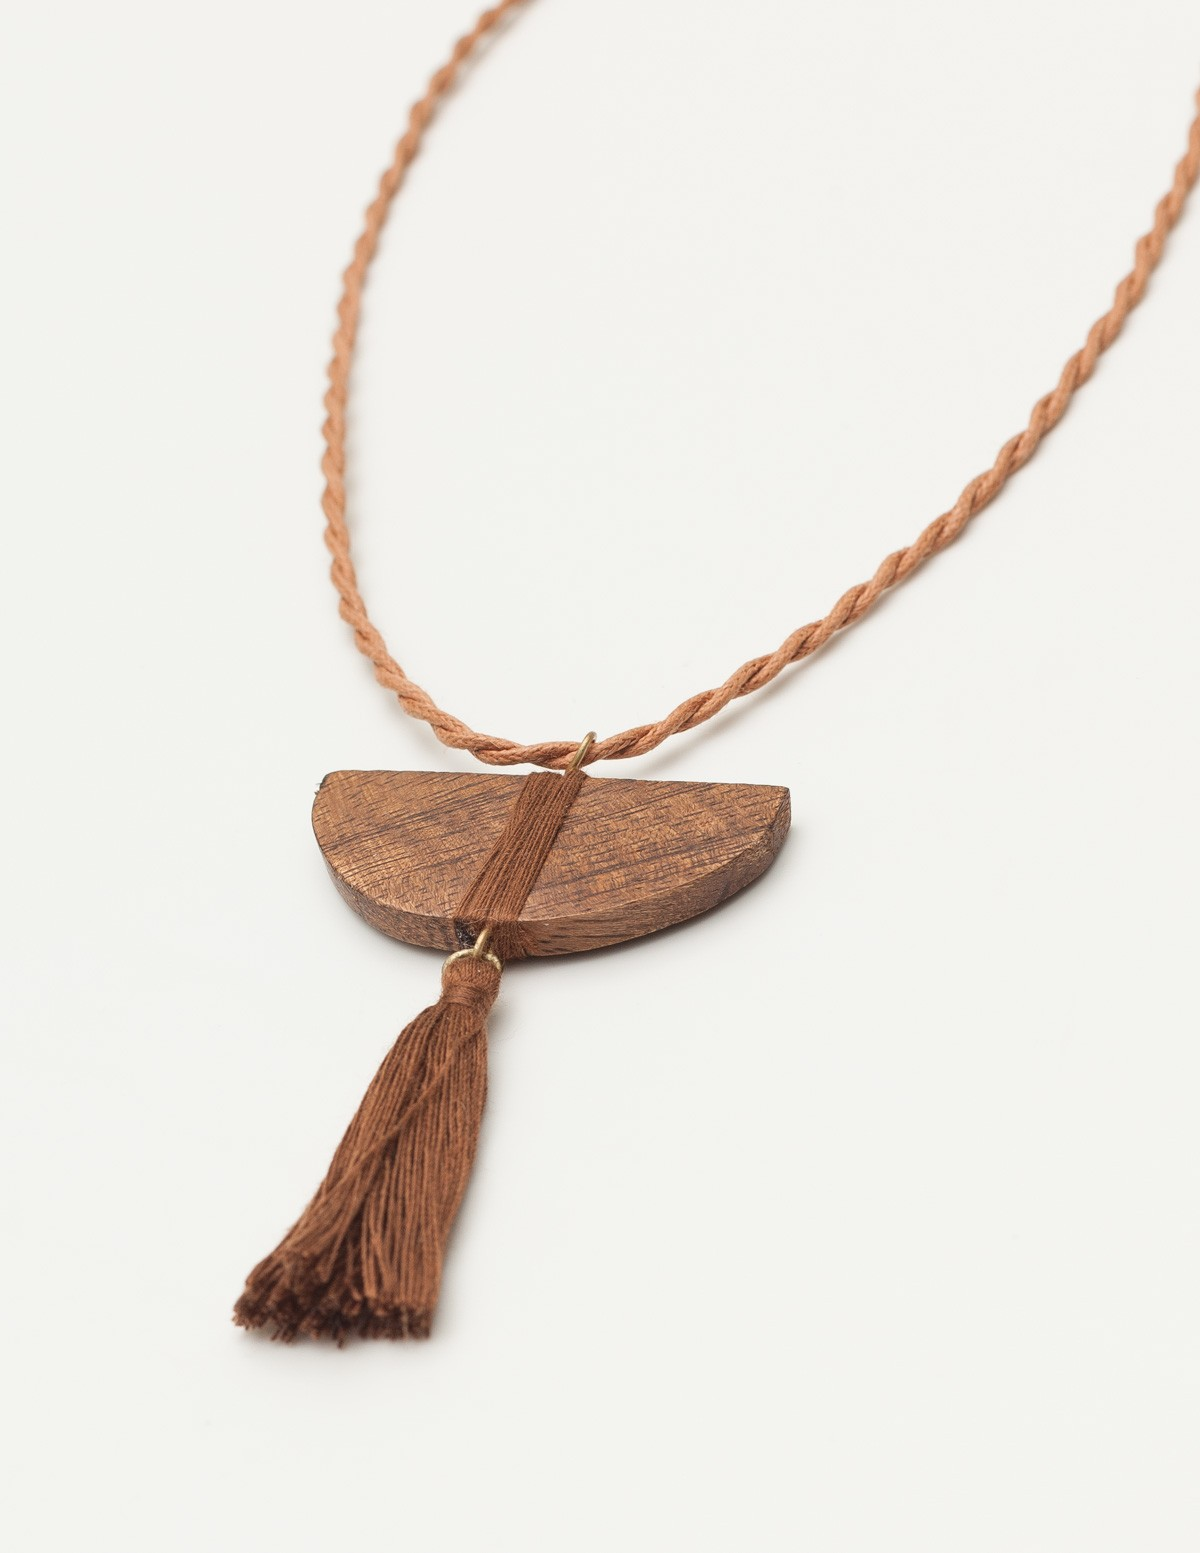 Wooden piece necklace